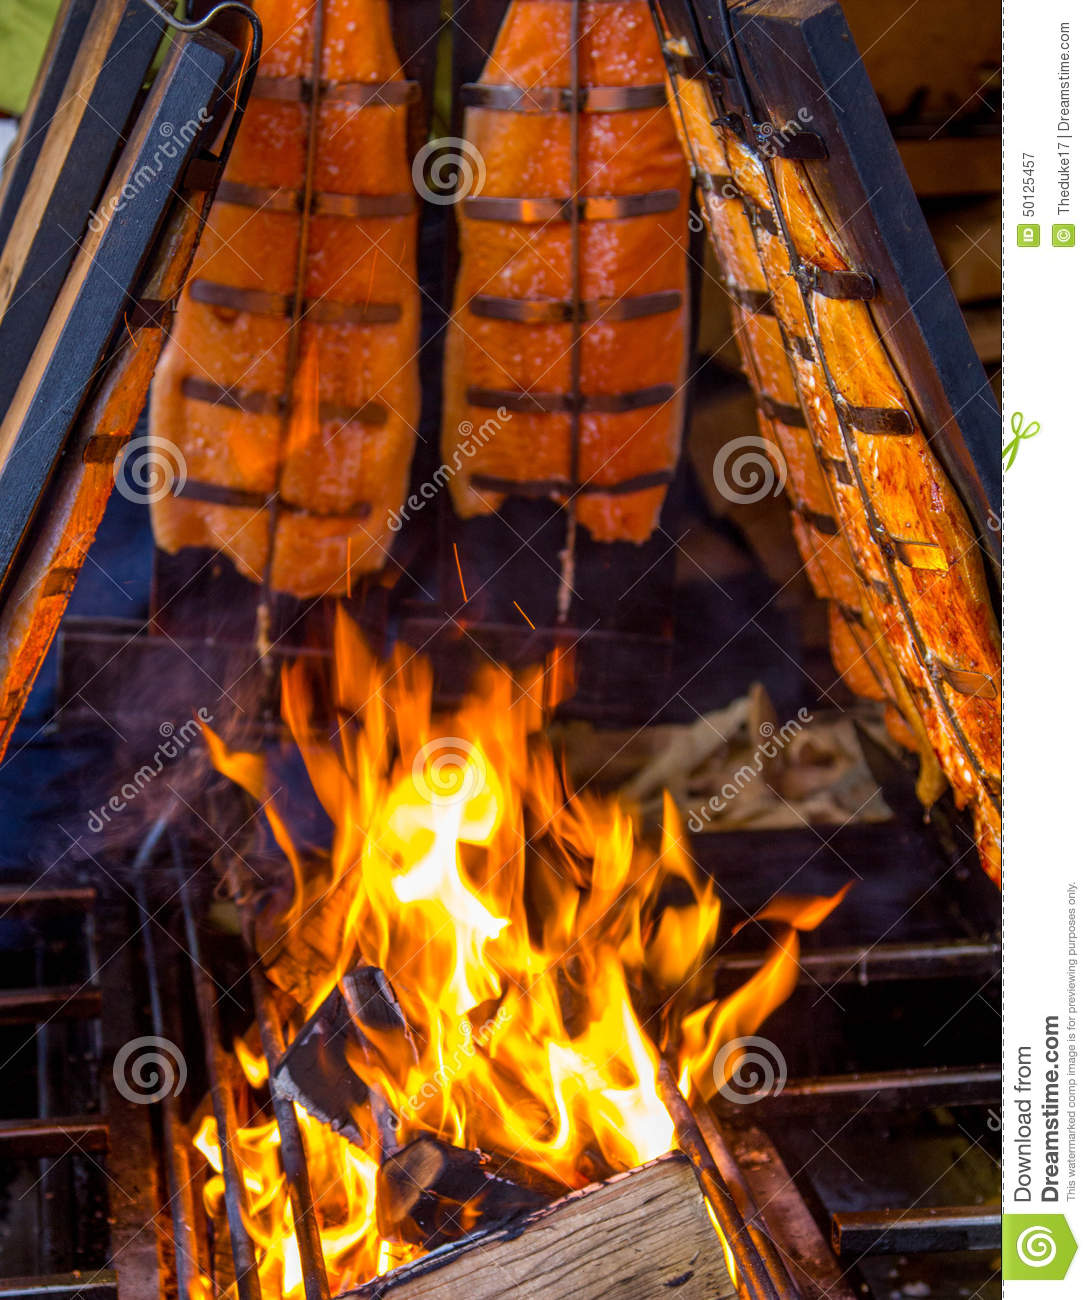 Smoked salmon stock image image of barbequing fresh for Fish on fire